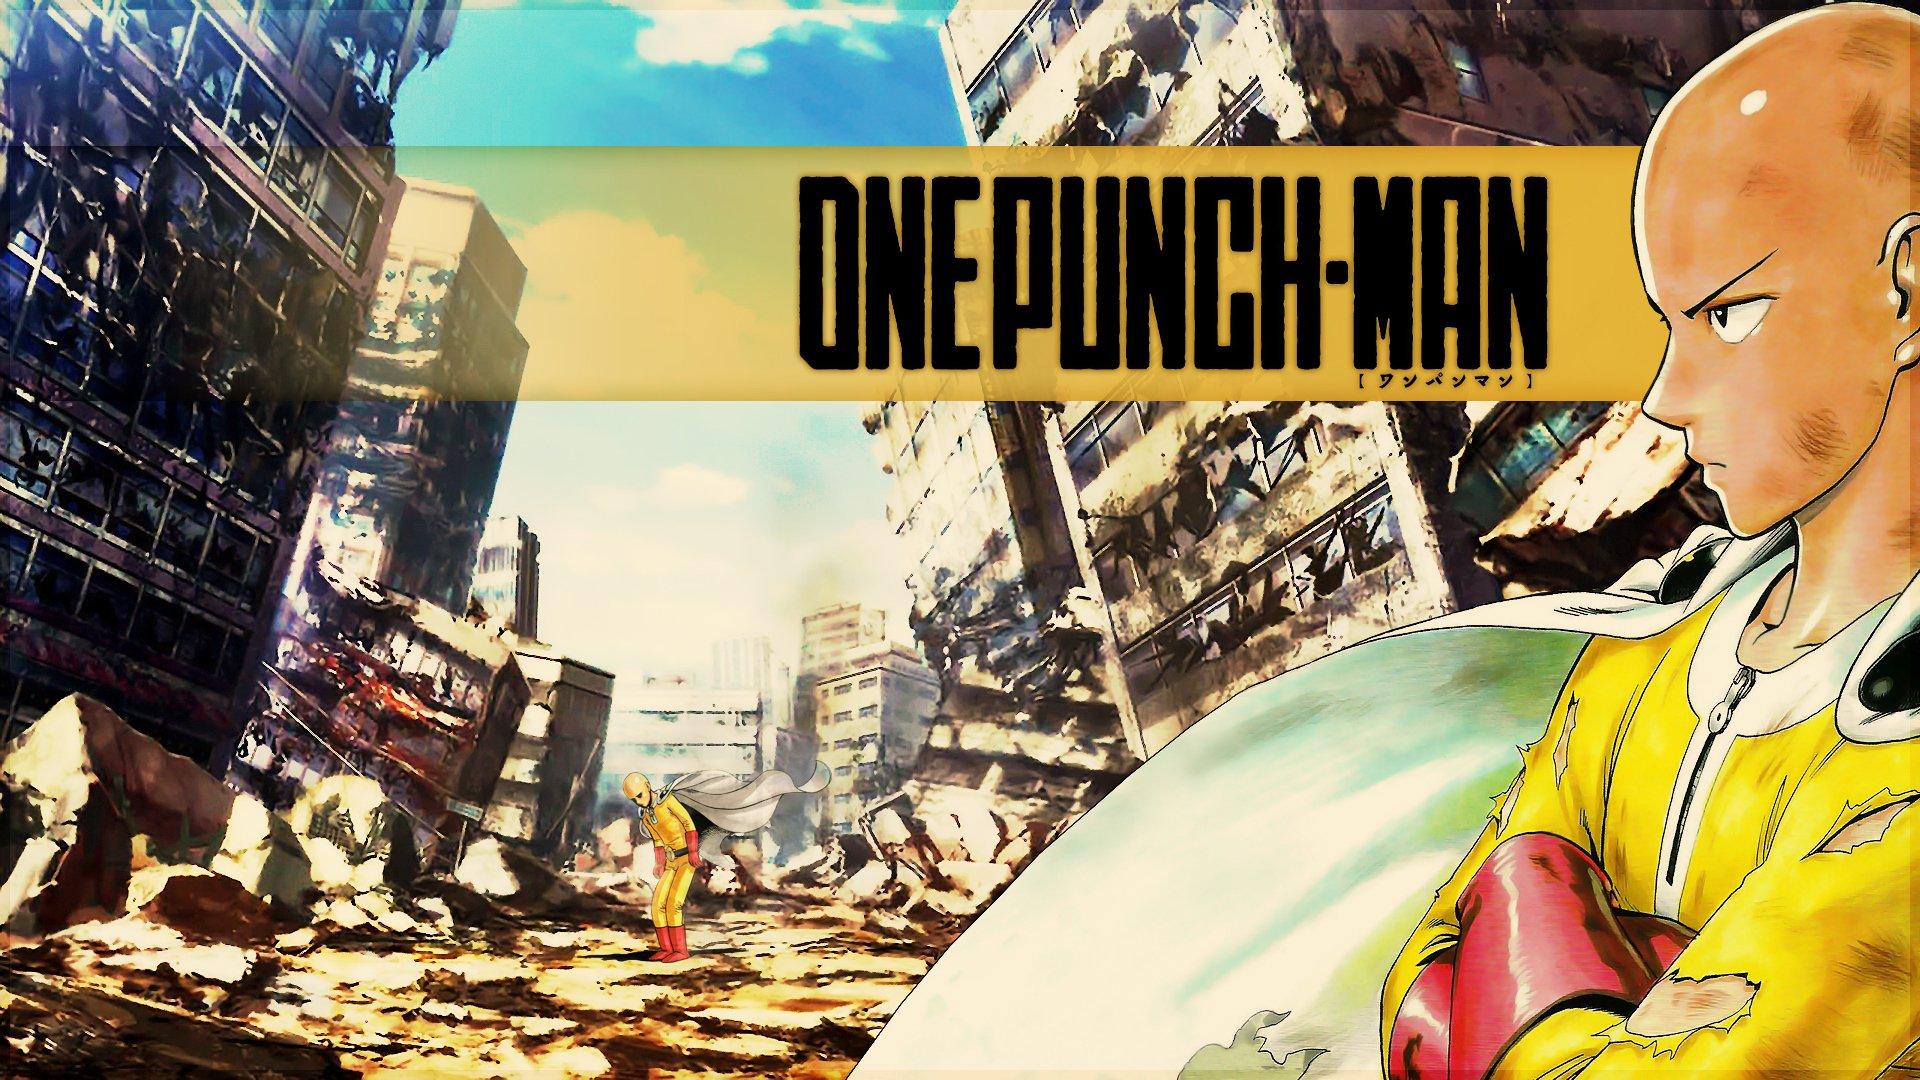 Hd wallpaper one punch man - Lord Boros One Punch Man Saitama Hd Wallpaper Background Id 670107